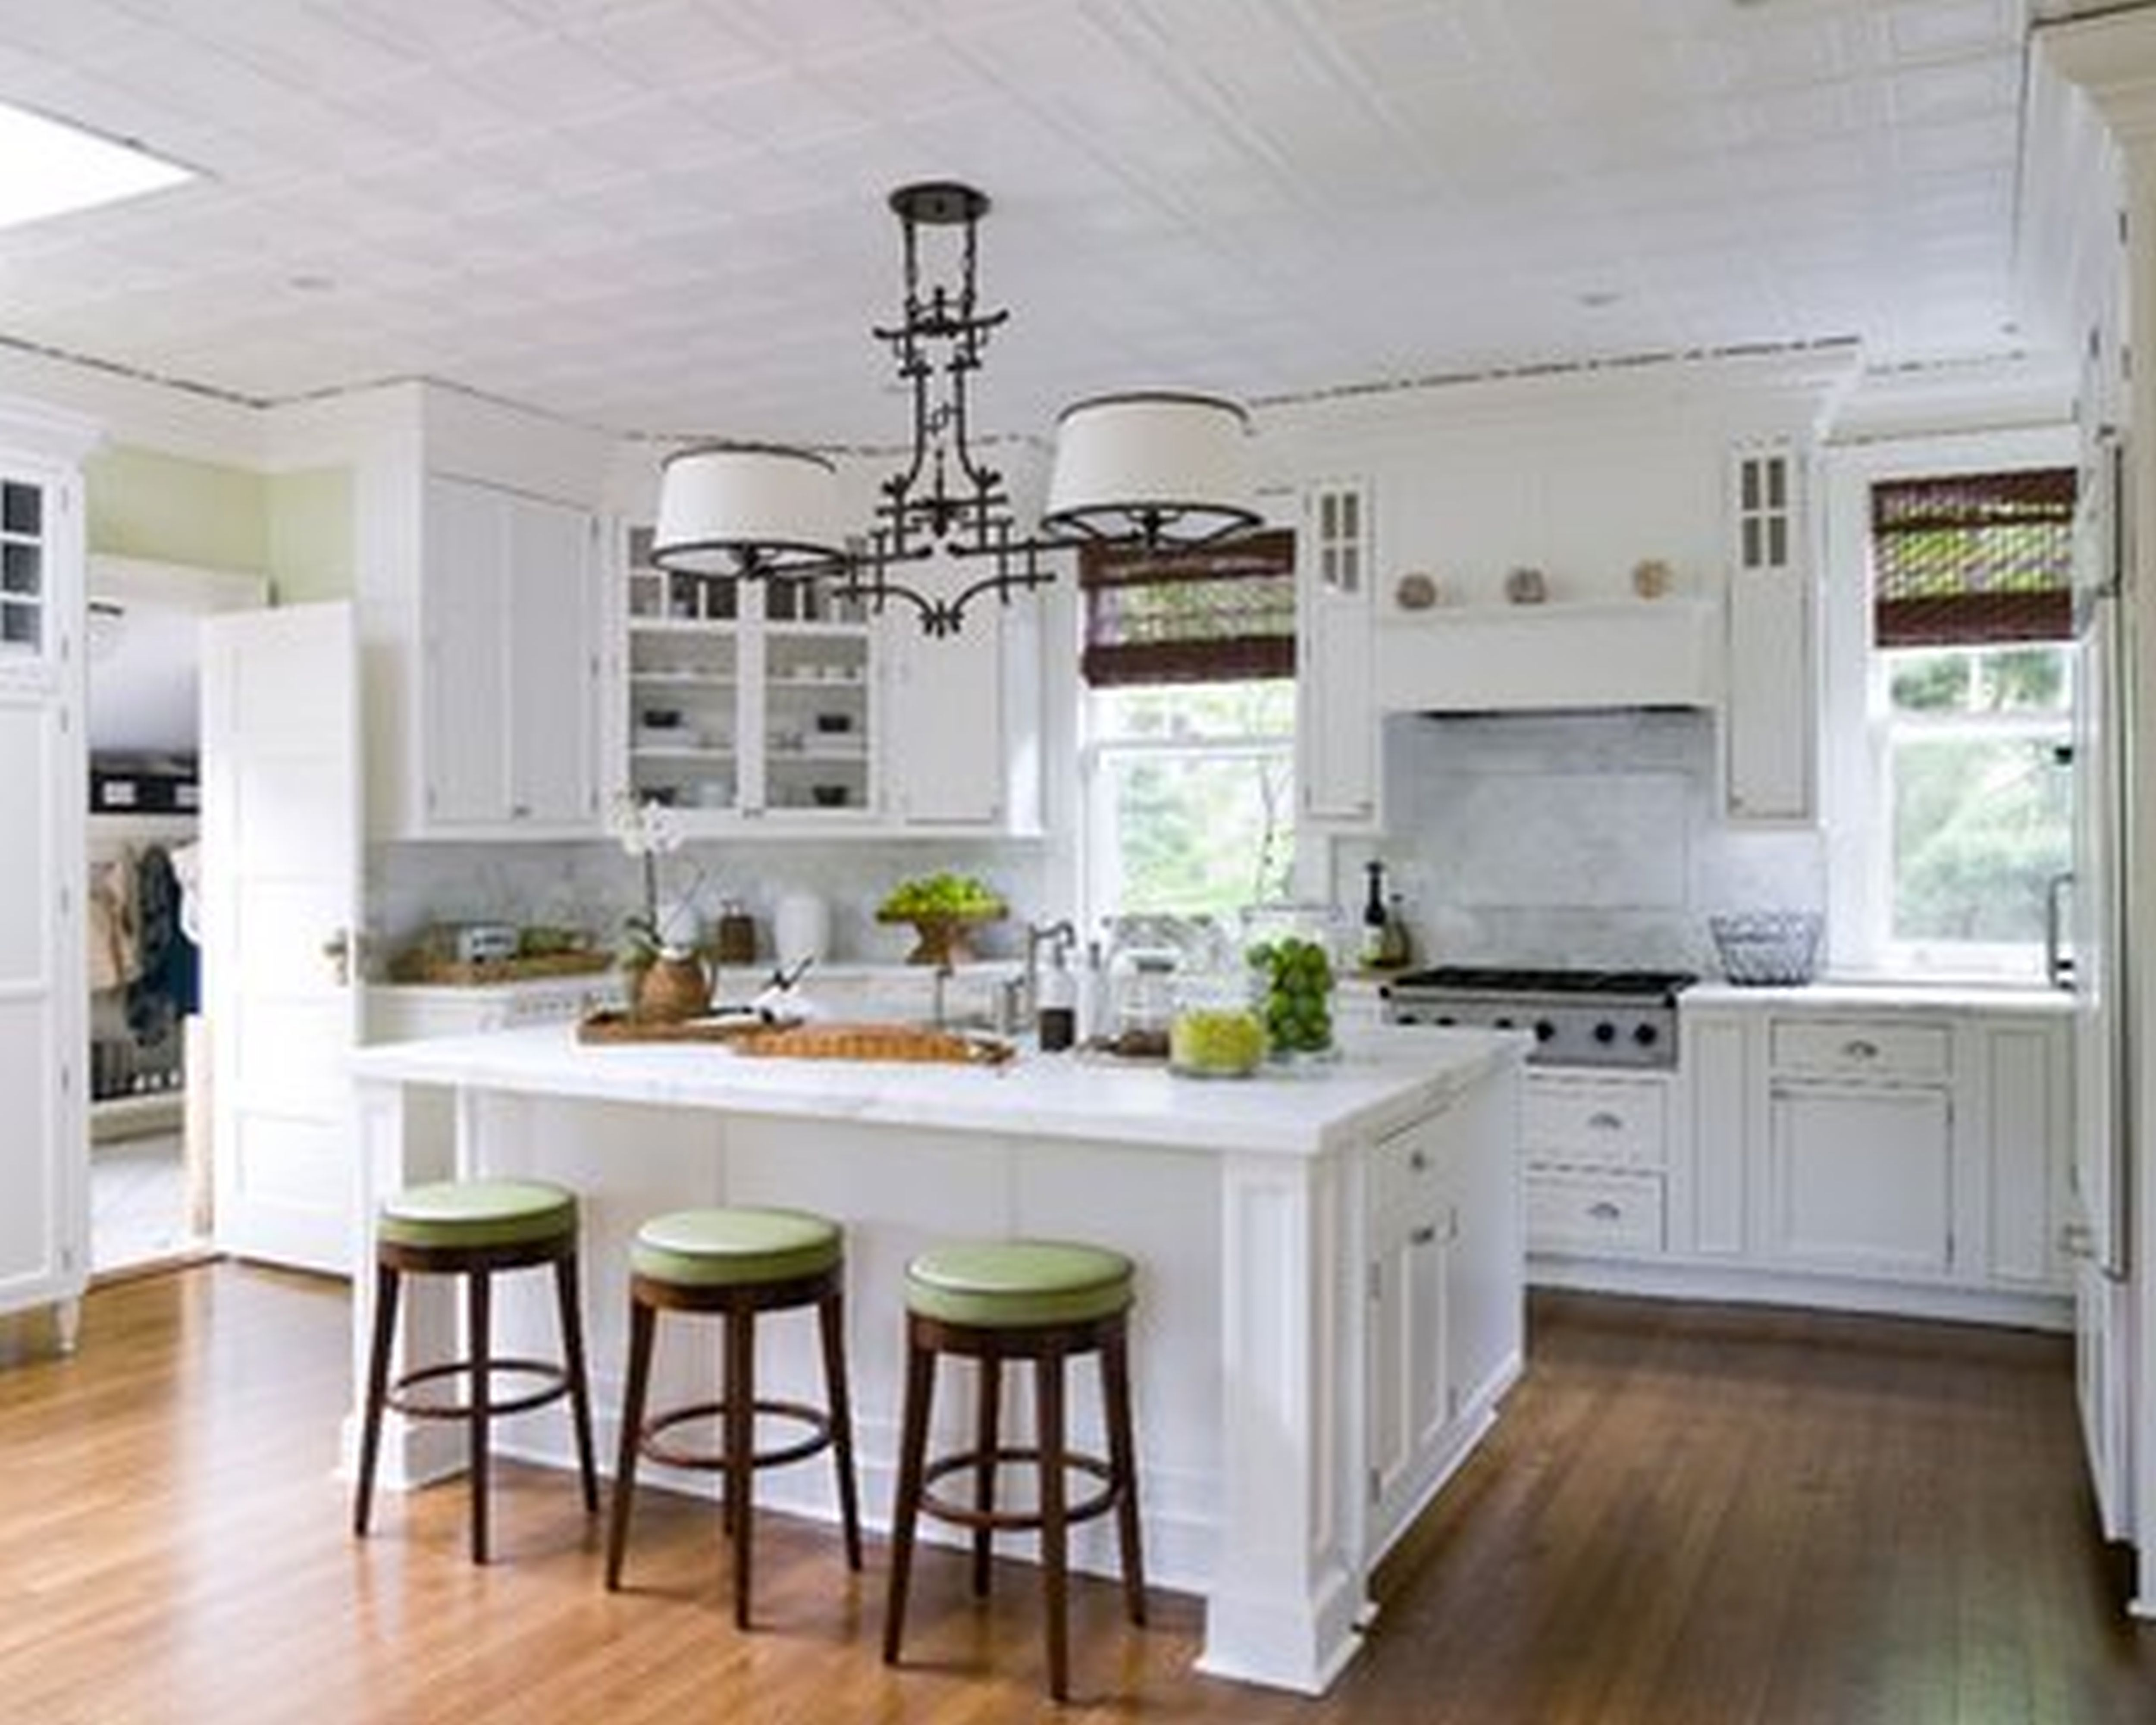 Endearing Small White Kitchens Ideas: Gorgeous White Shade 2 Lights Island  Pendant Lamps Over Square Island In White Added Three Stools To Decorate In  ...